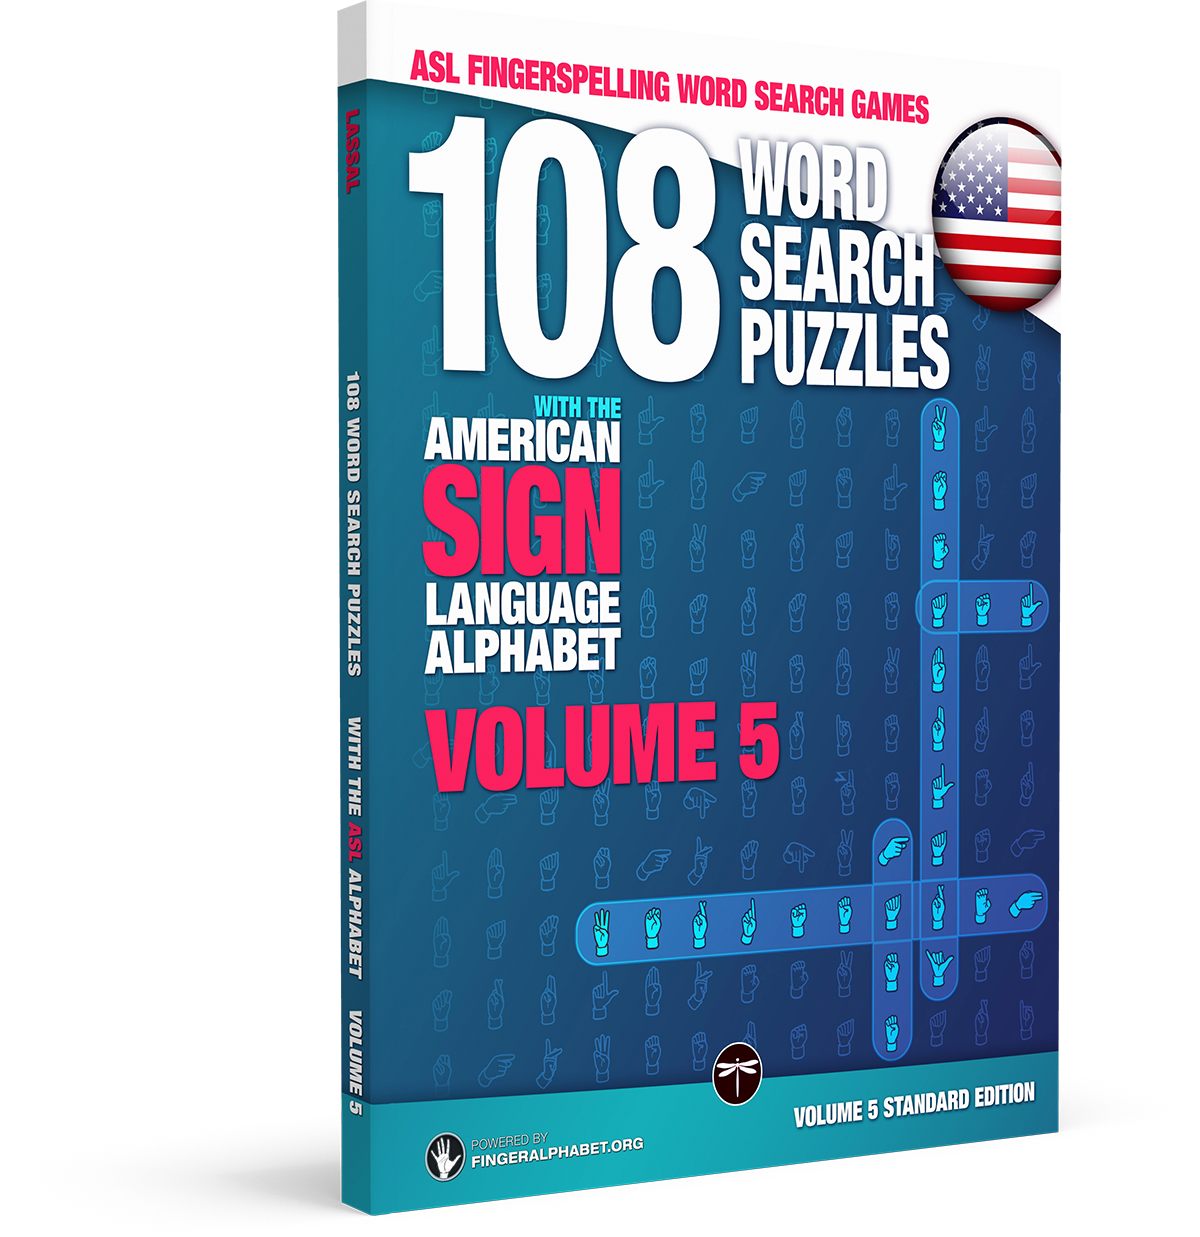 108 Word Search Puzzles with The American Sign Language Alphabet: Vol 5 Standard Edition